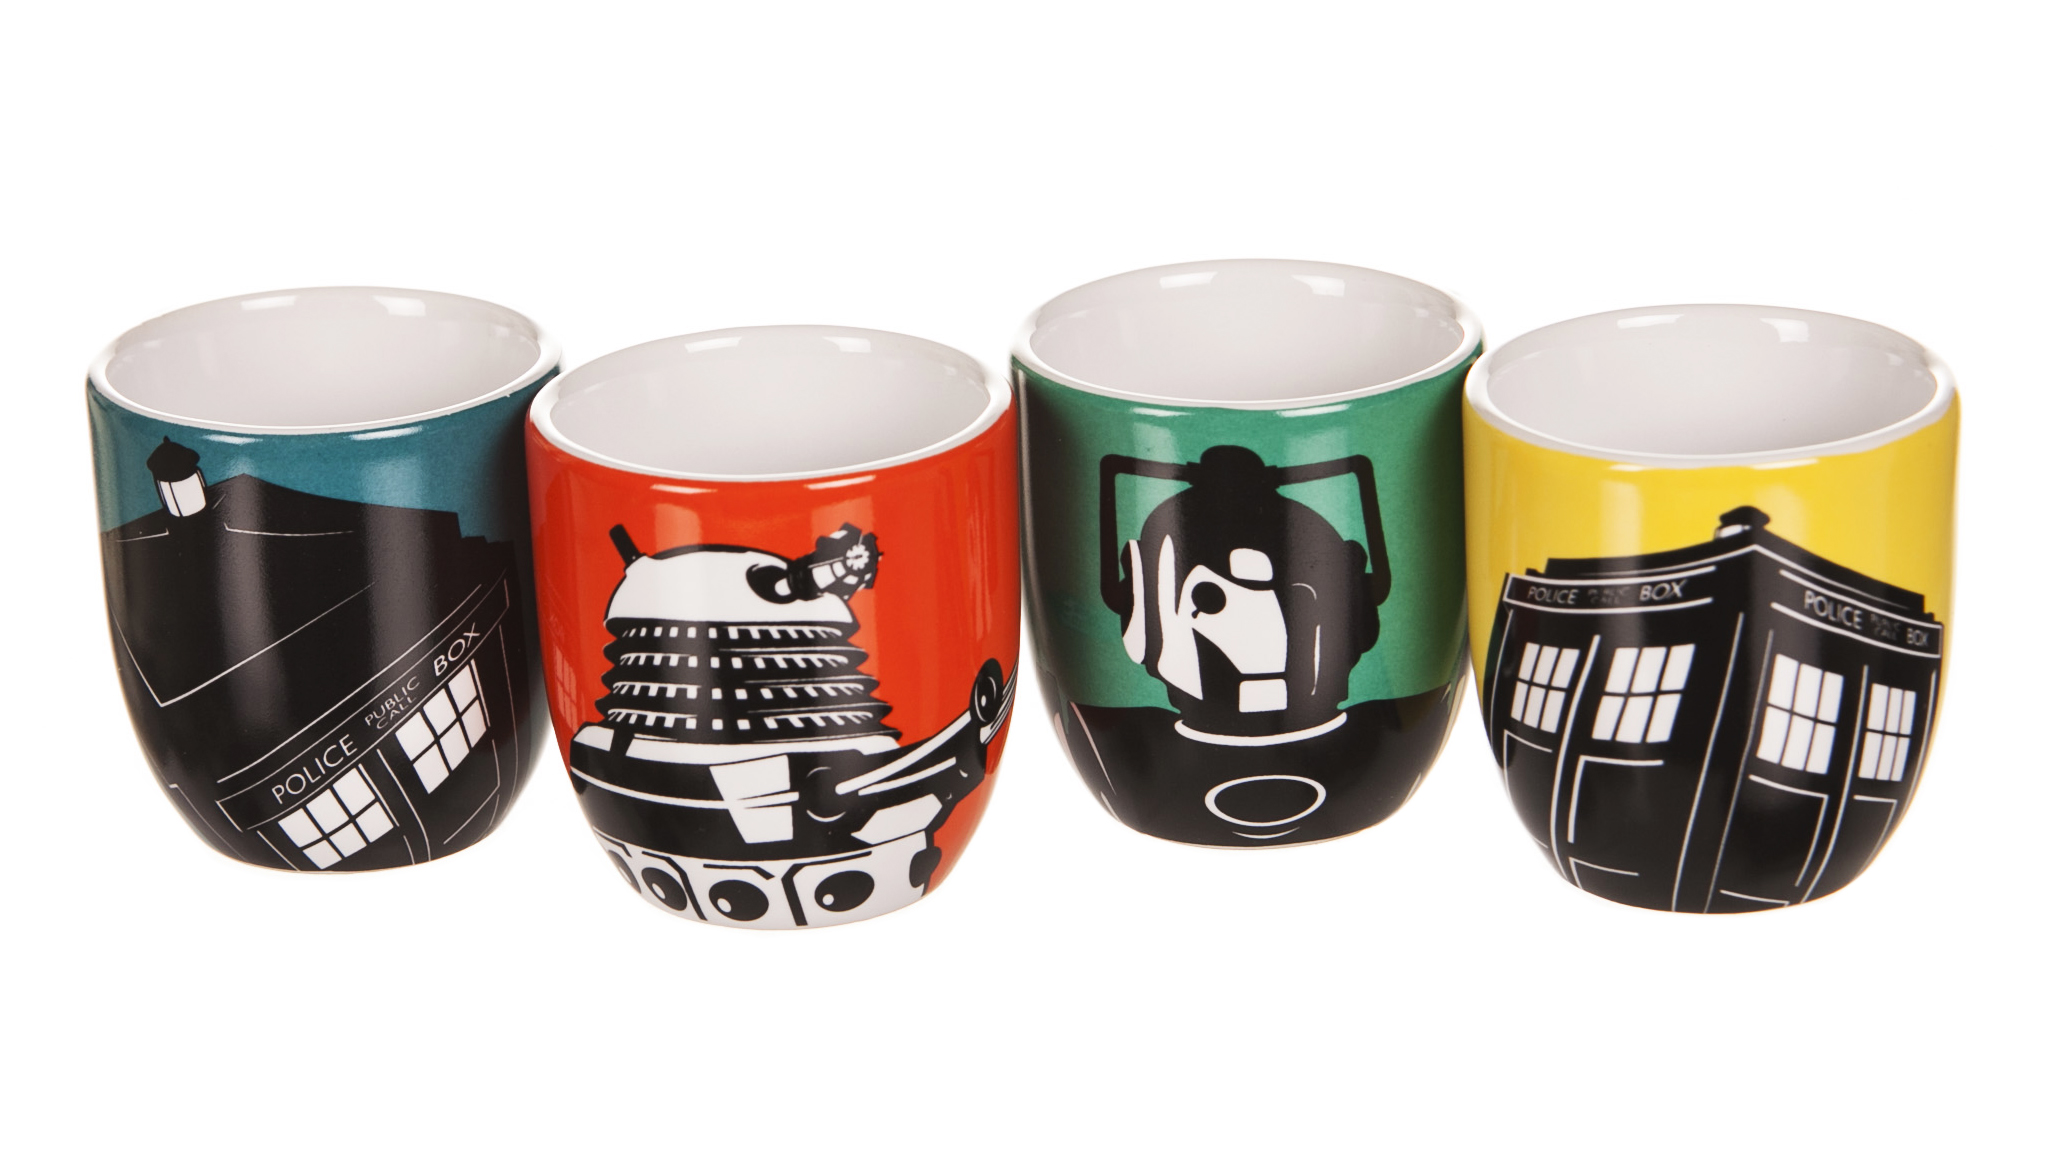 https://www.truffleshuffle.co.uk/images_high_res/Doctor_Who_Set_Of_4_Egg_Cups_from_BBC_Worldwide_hi_res.jpg